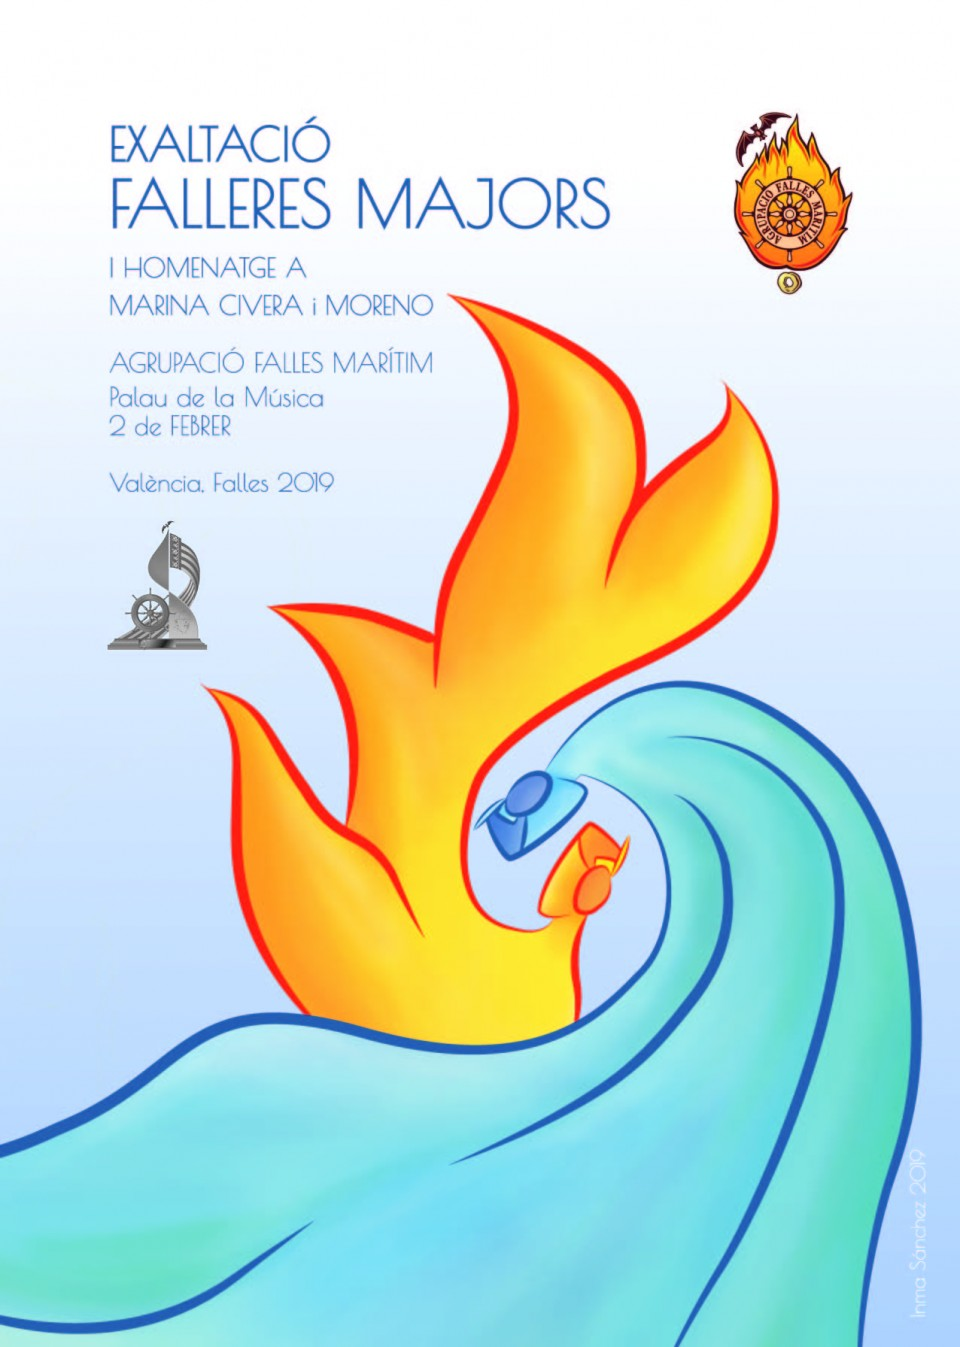 Exaltation of the Falleras Mayores 2019 of the Grouping of Fallas of the Maritime